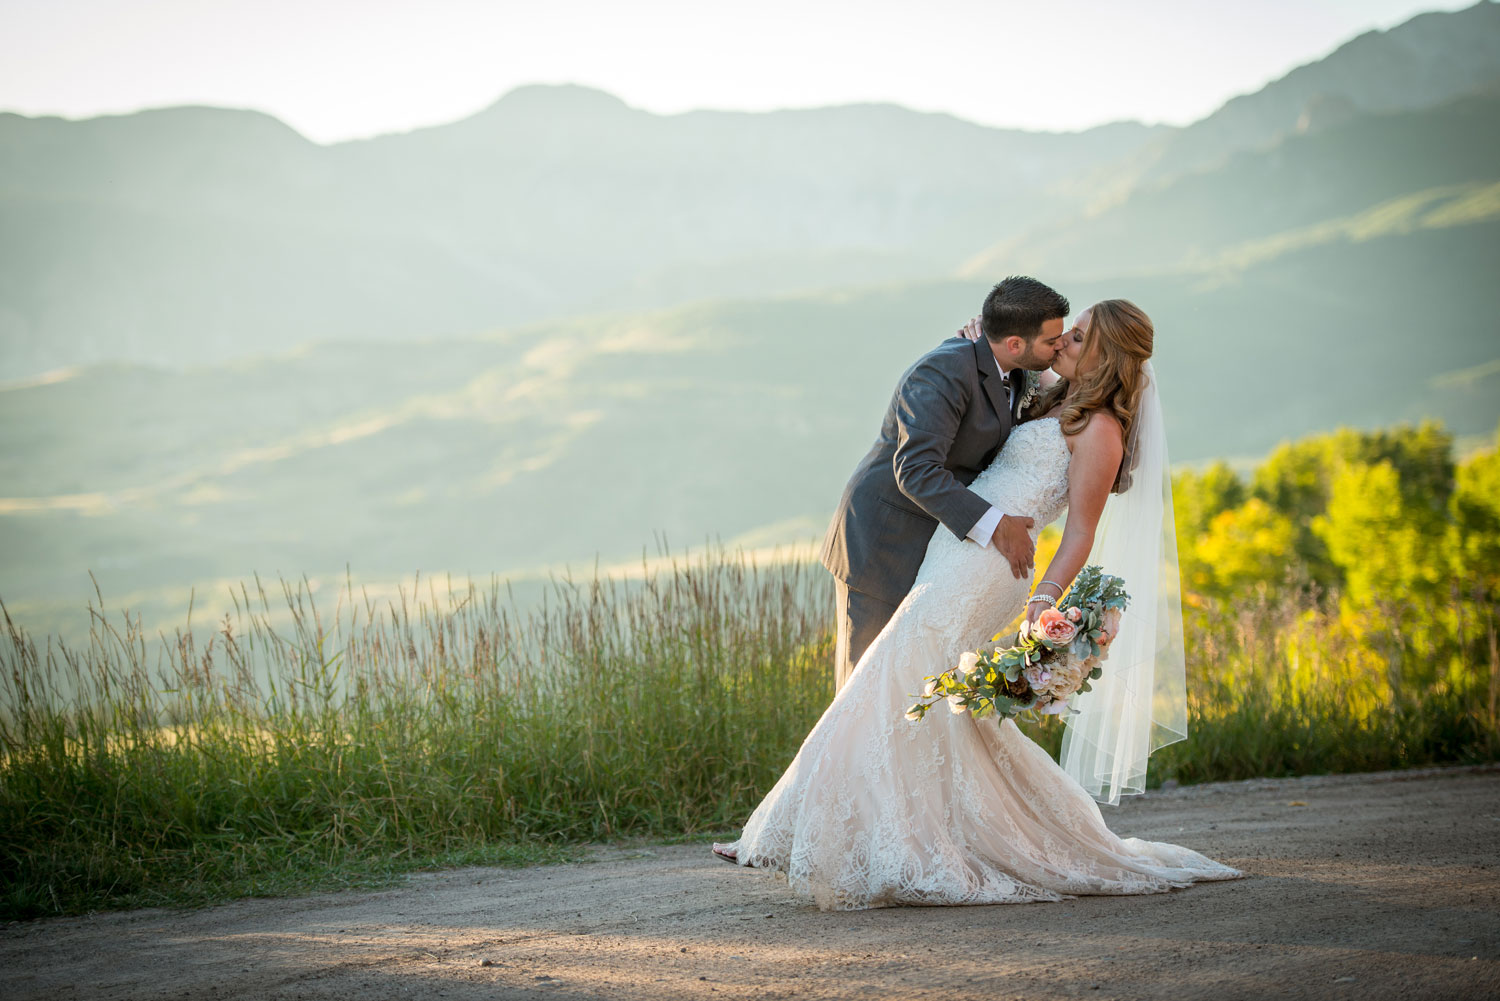 Destination Wedding at 10,022 Feet in Telluride, Colorado